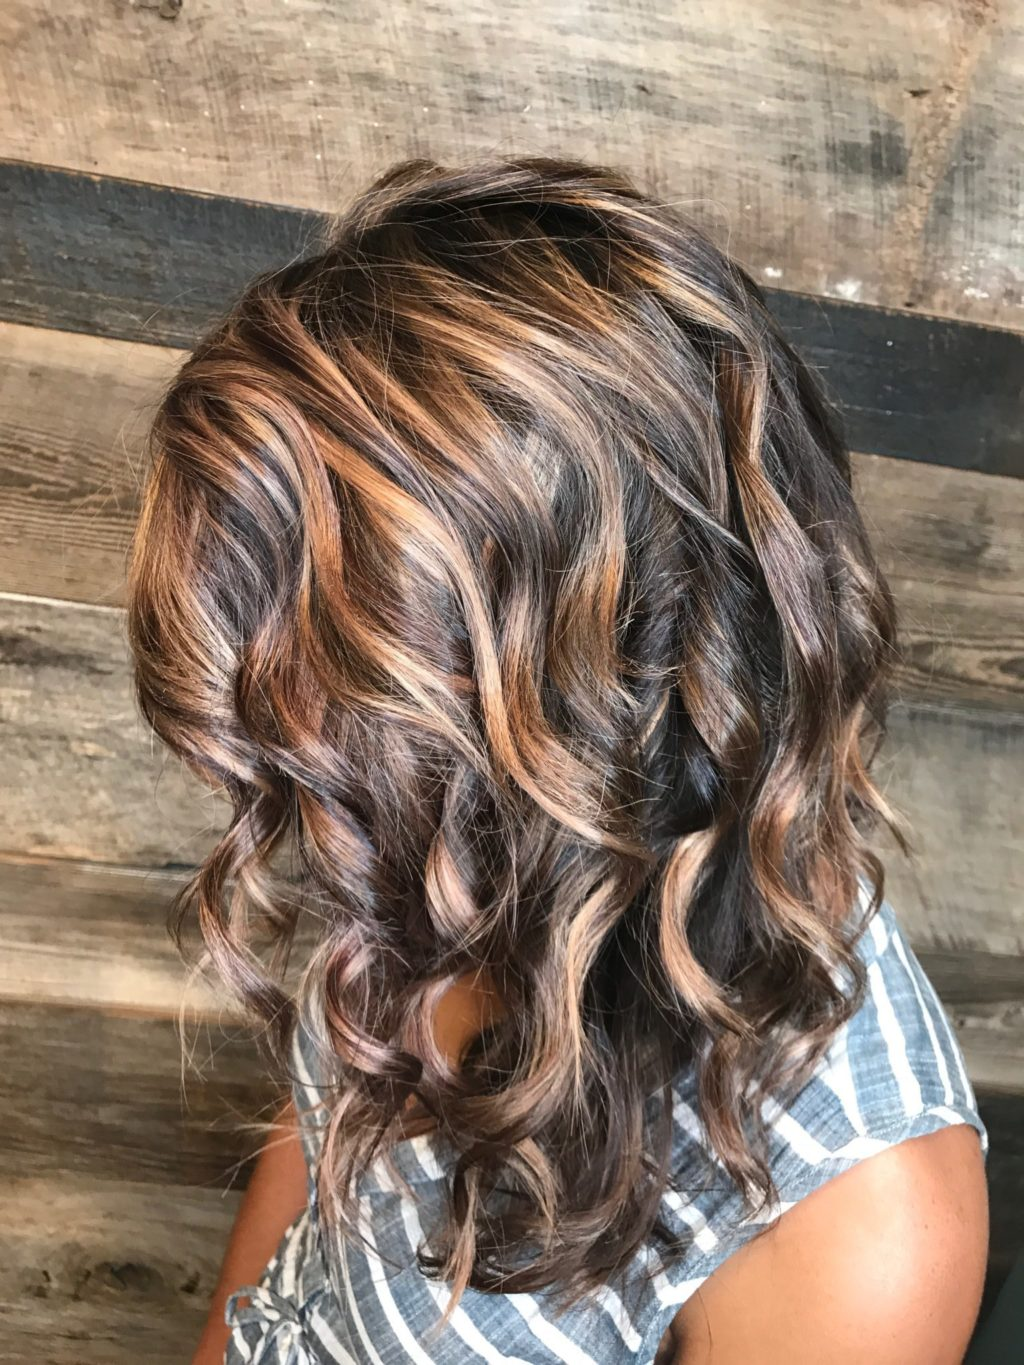 Caramel Highlights Bronde Dimension Fall Color Inspiration Healthy